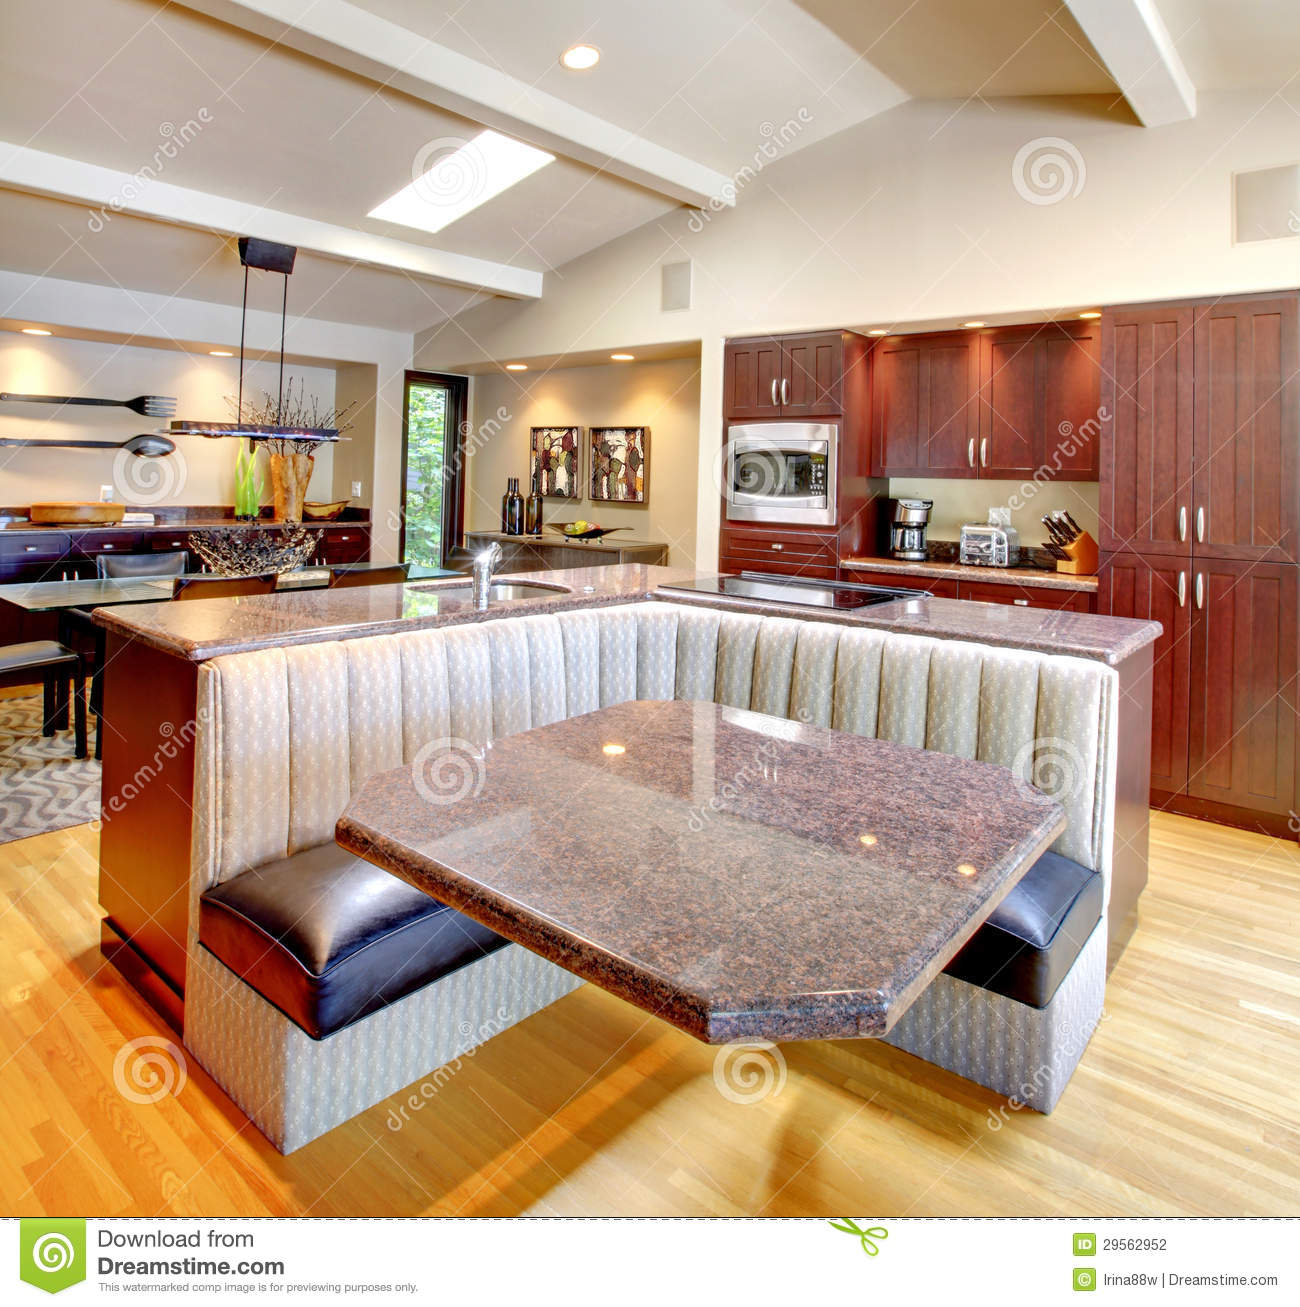 Luxury Kitchen Room Interior Bright Wooden Stock Vector: Luxury Mahogany Kitchen With Modern Furniture. Stock